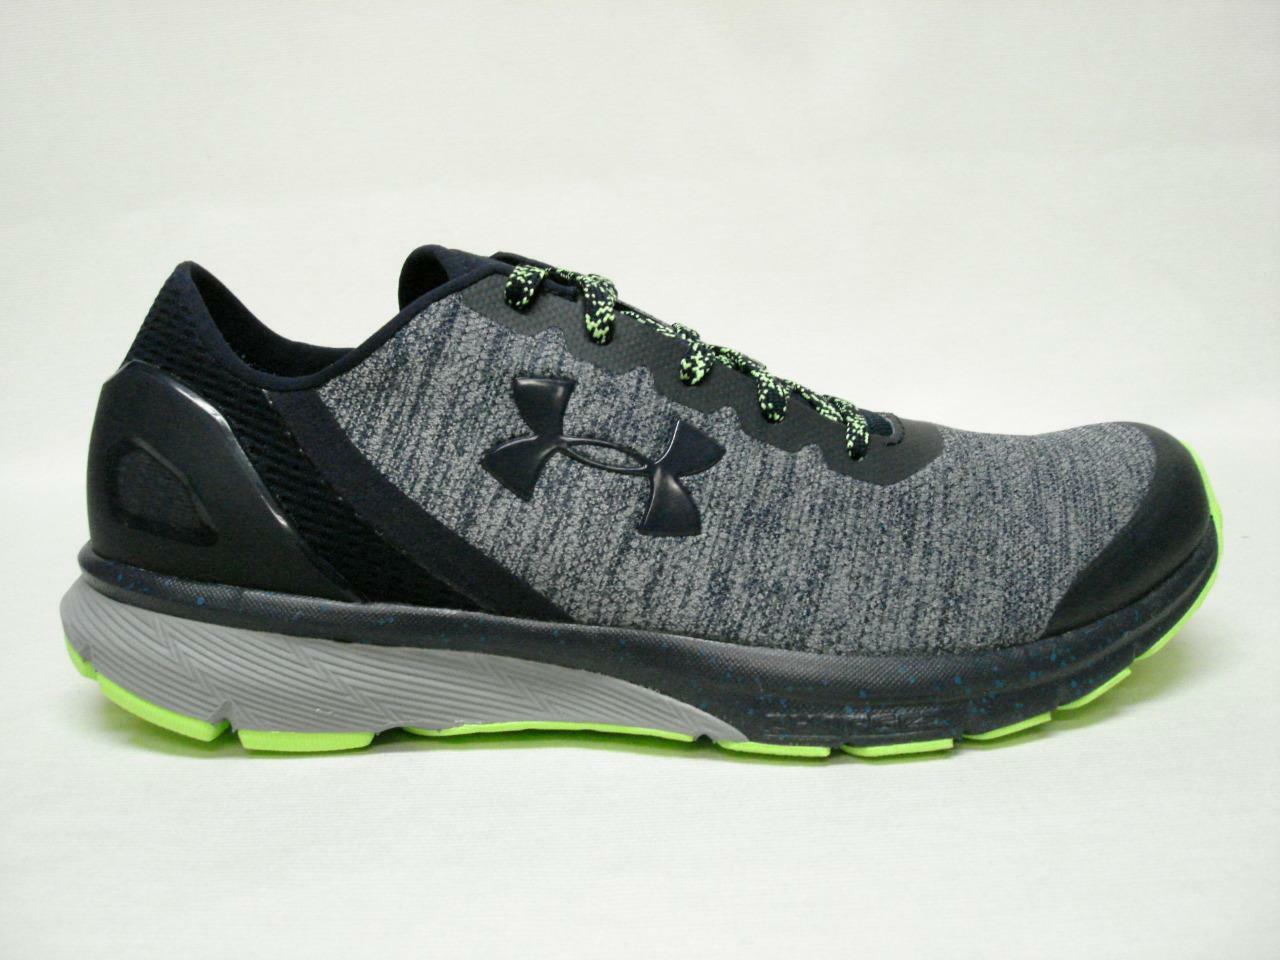 NIB UNDER ARMOUR MENS schuhe'S CHARGED ESCAPE MDN RYL 11.5 AWESOME LOOKING schuhe'S